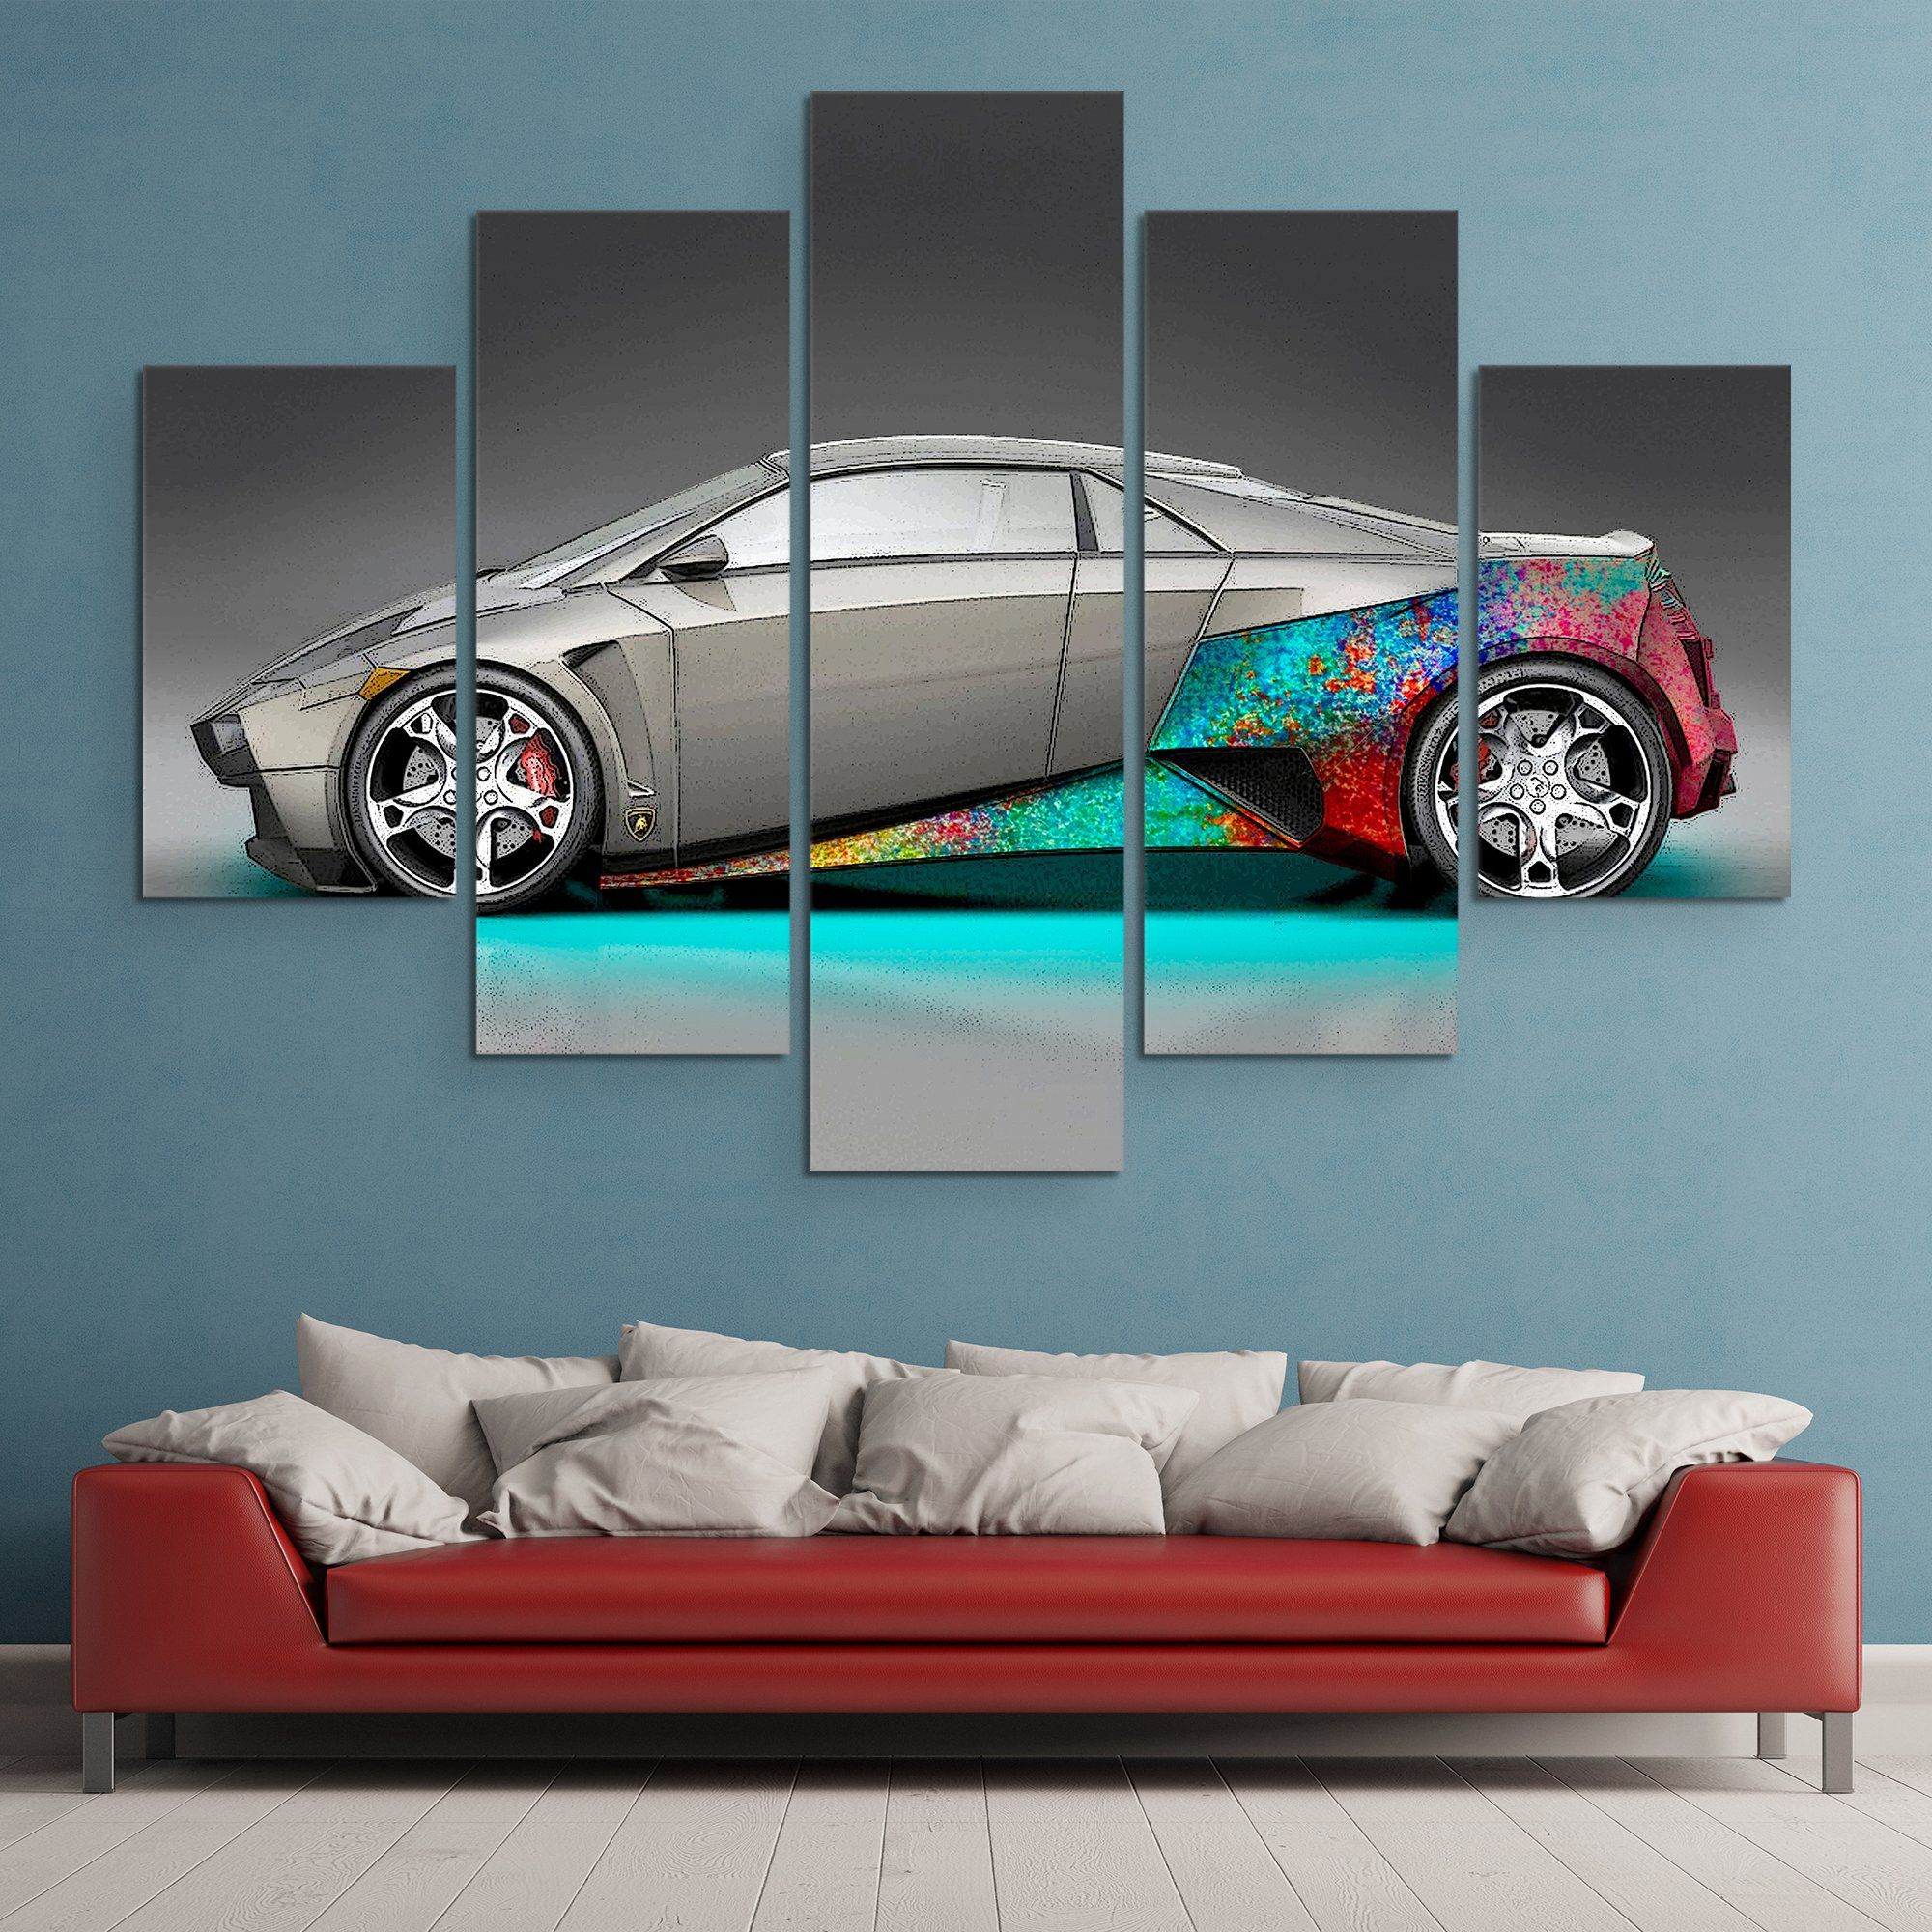 5 piece Lambo McFly wall art